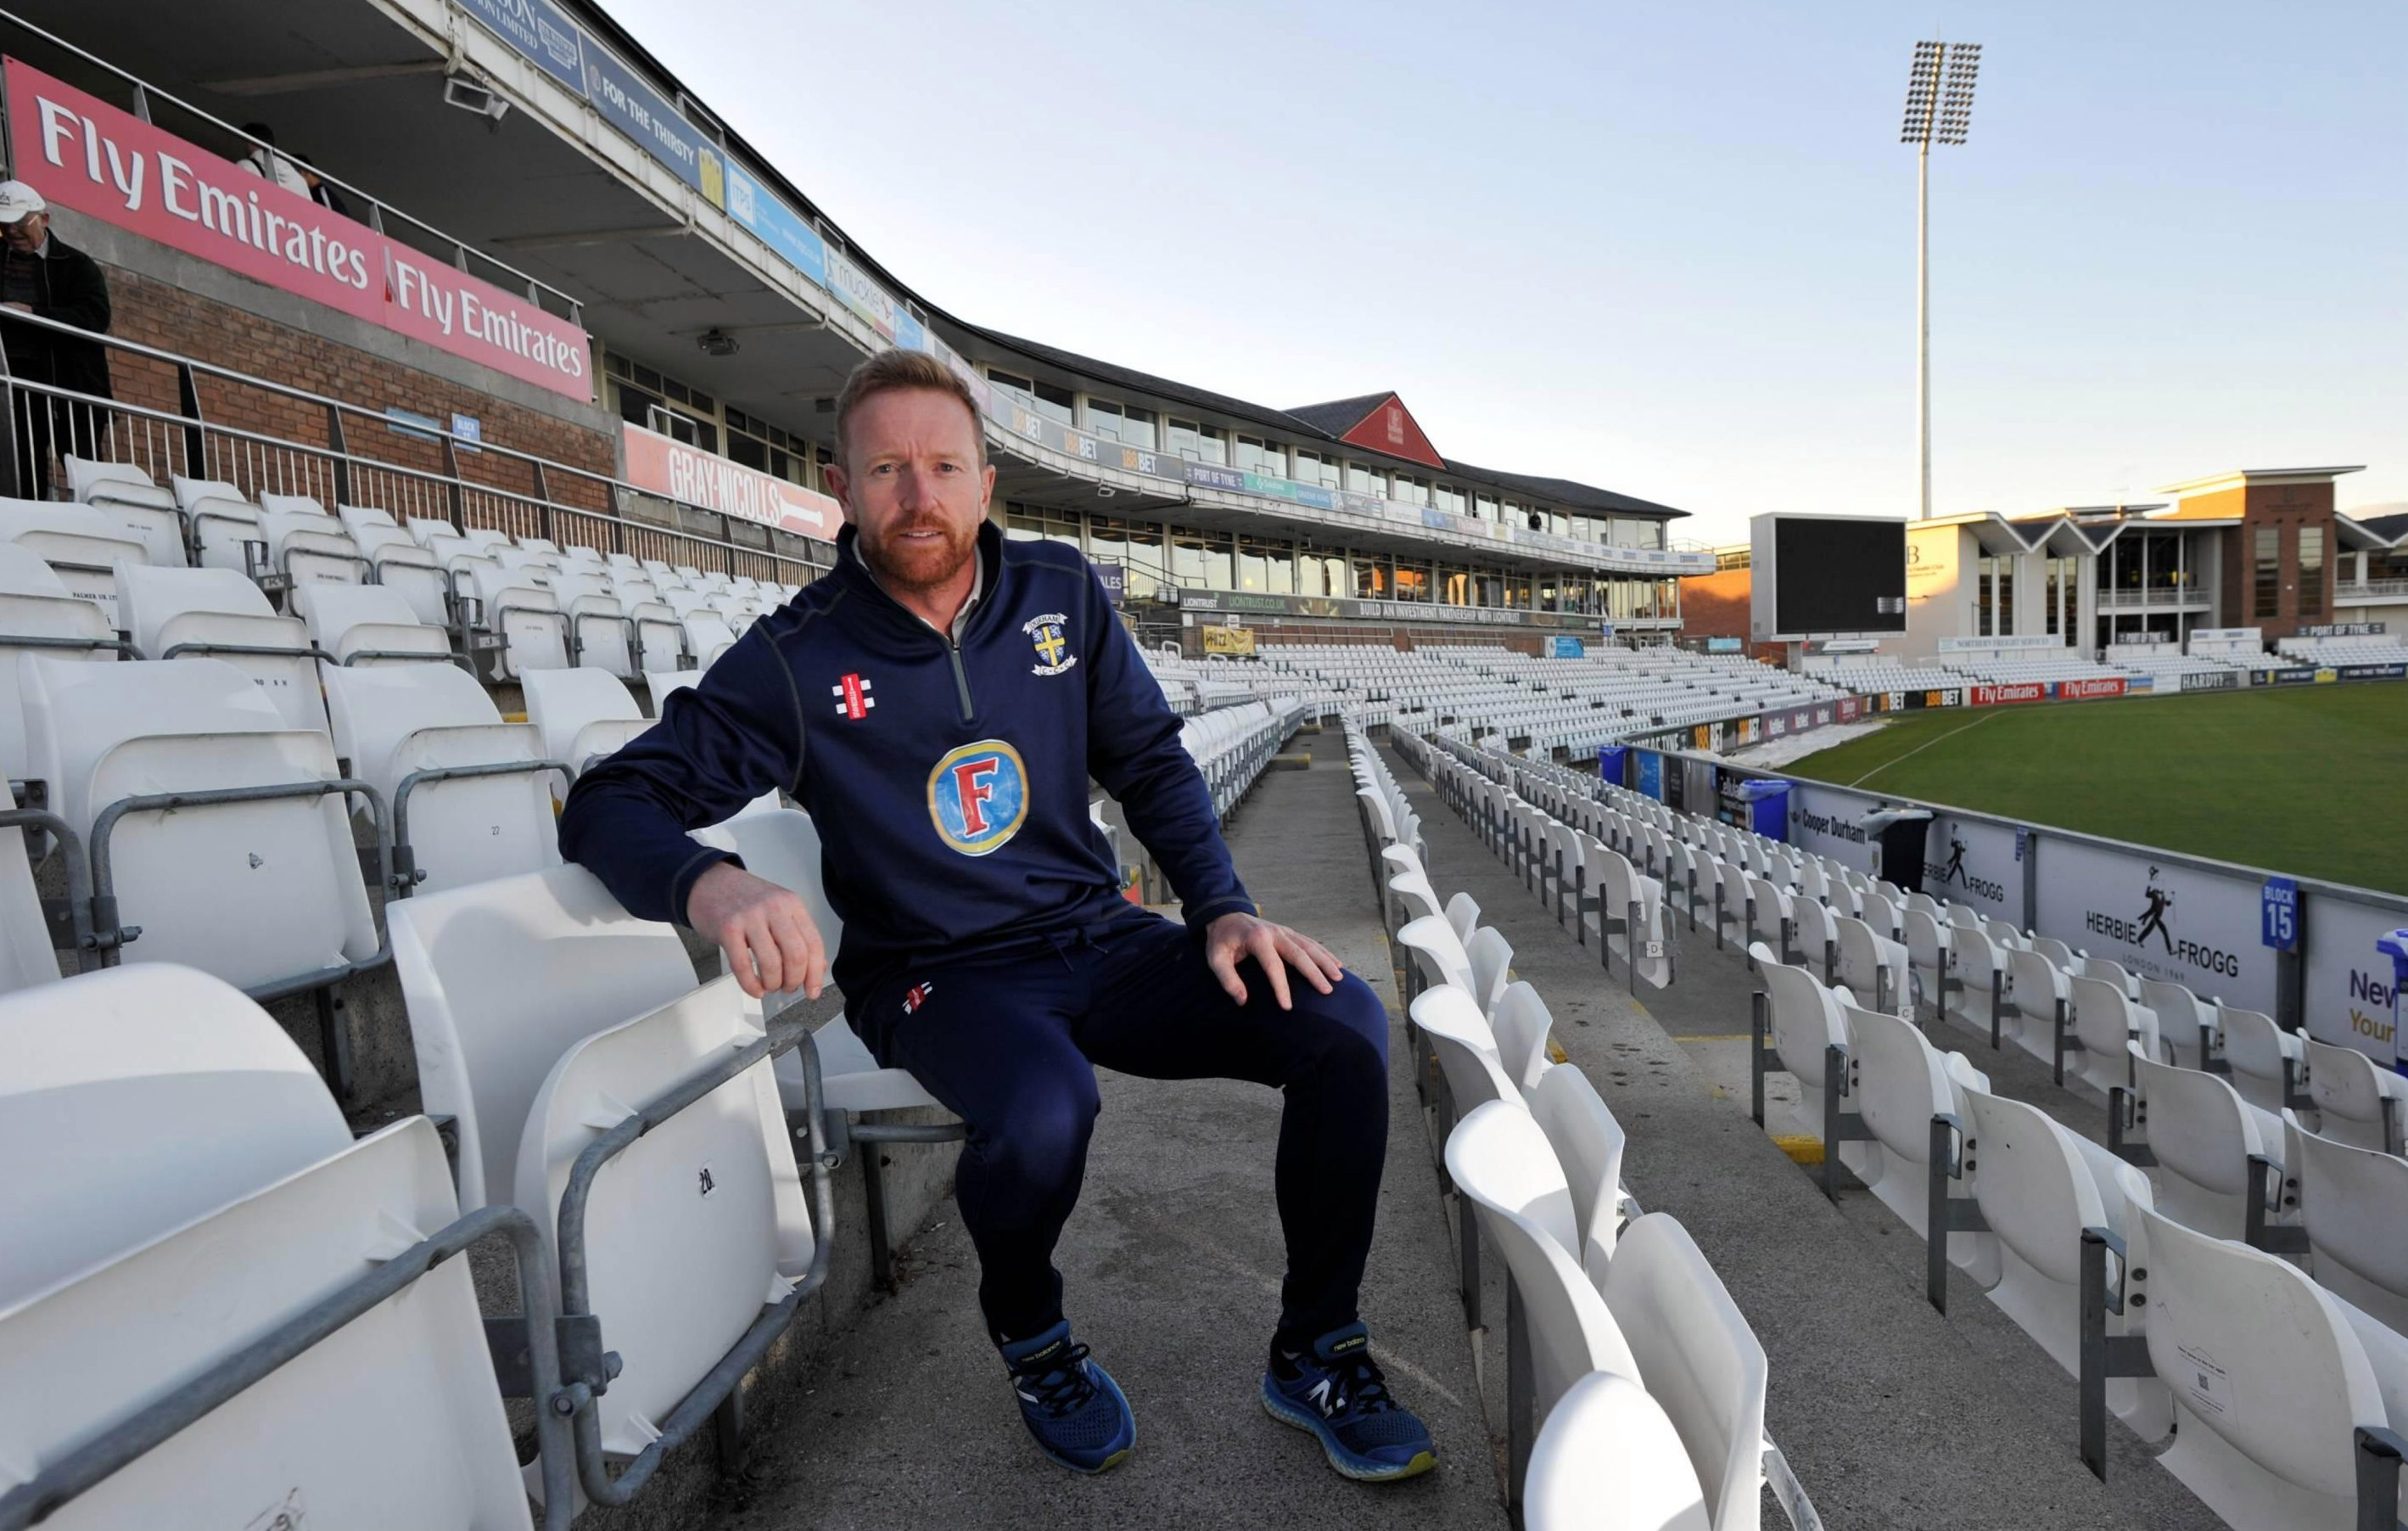 Paul Collingwood spoke to SunSport after his final game in cricket